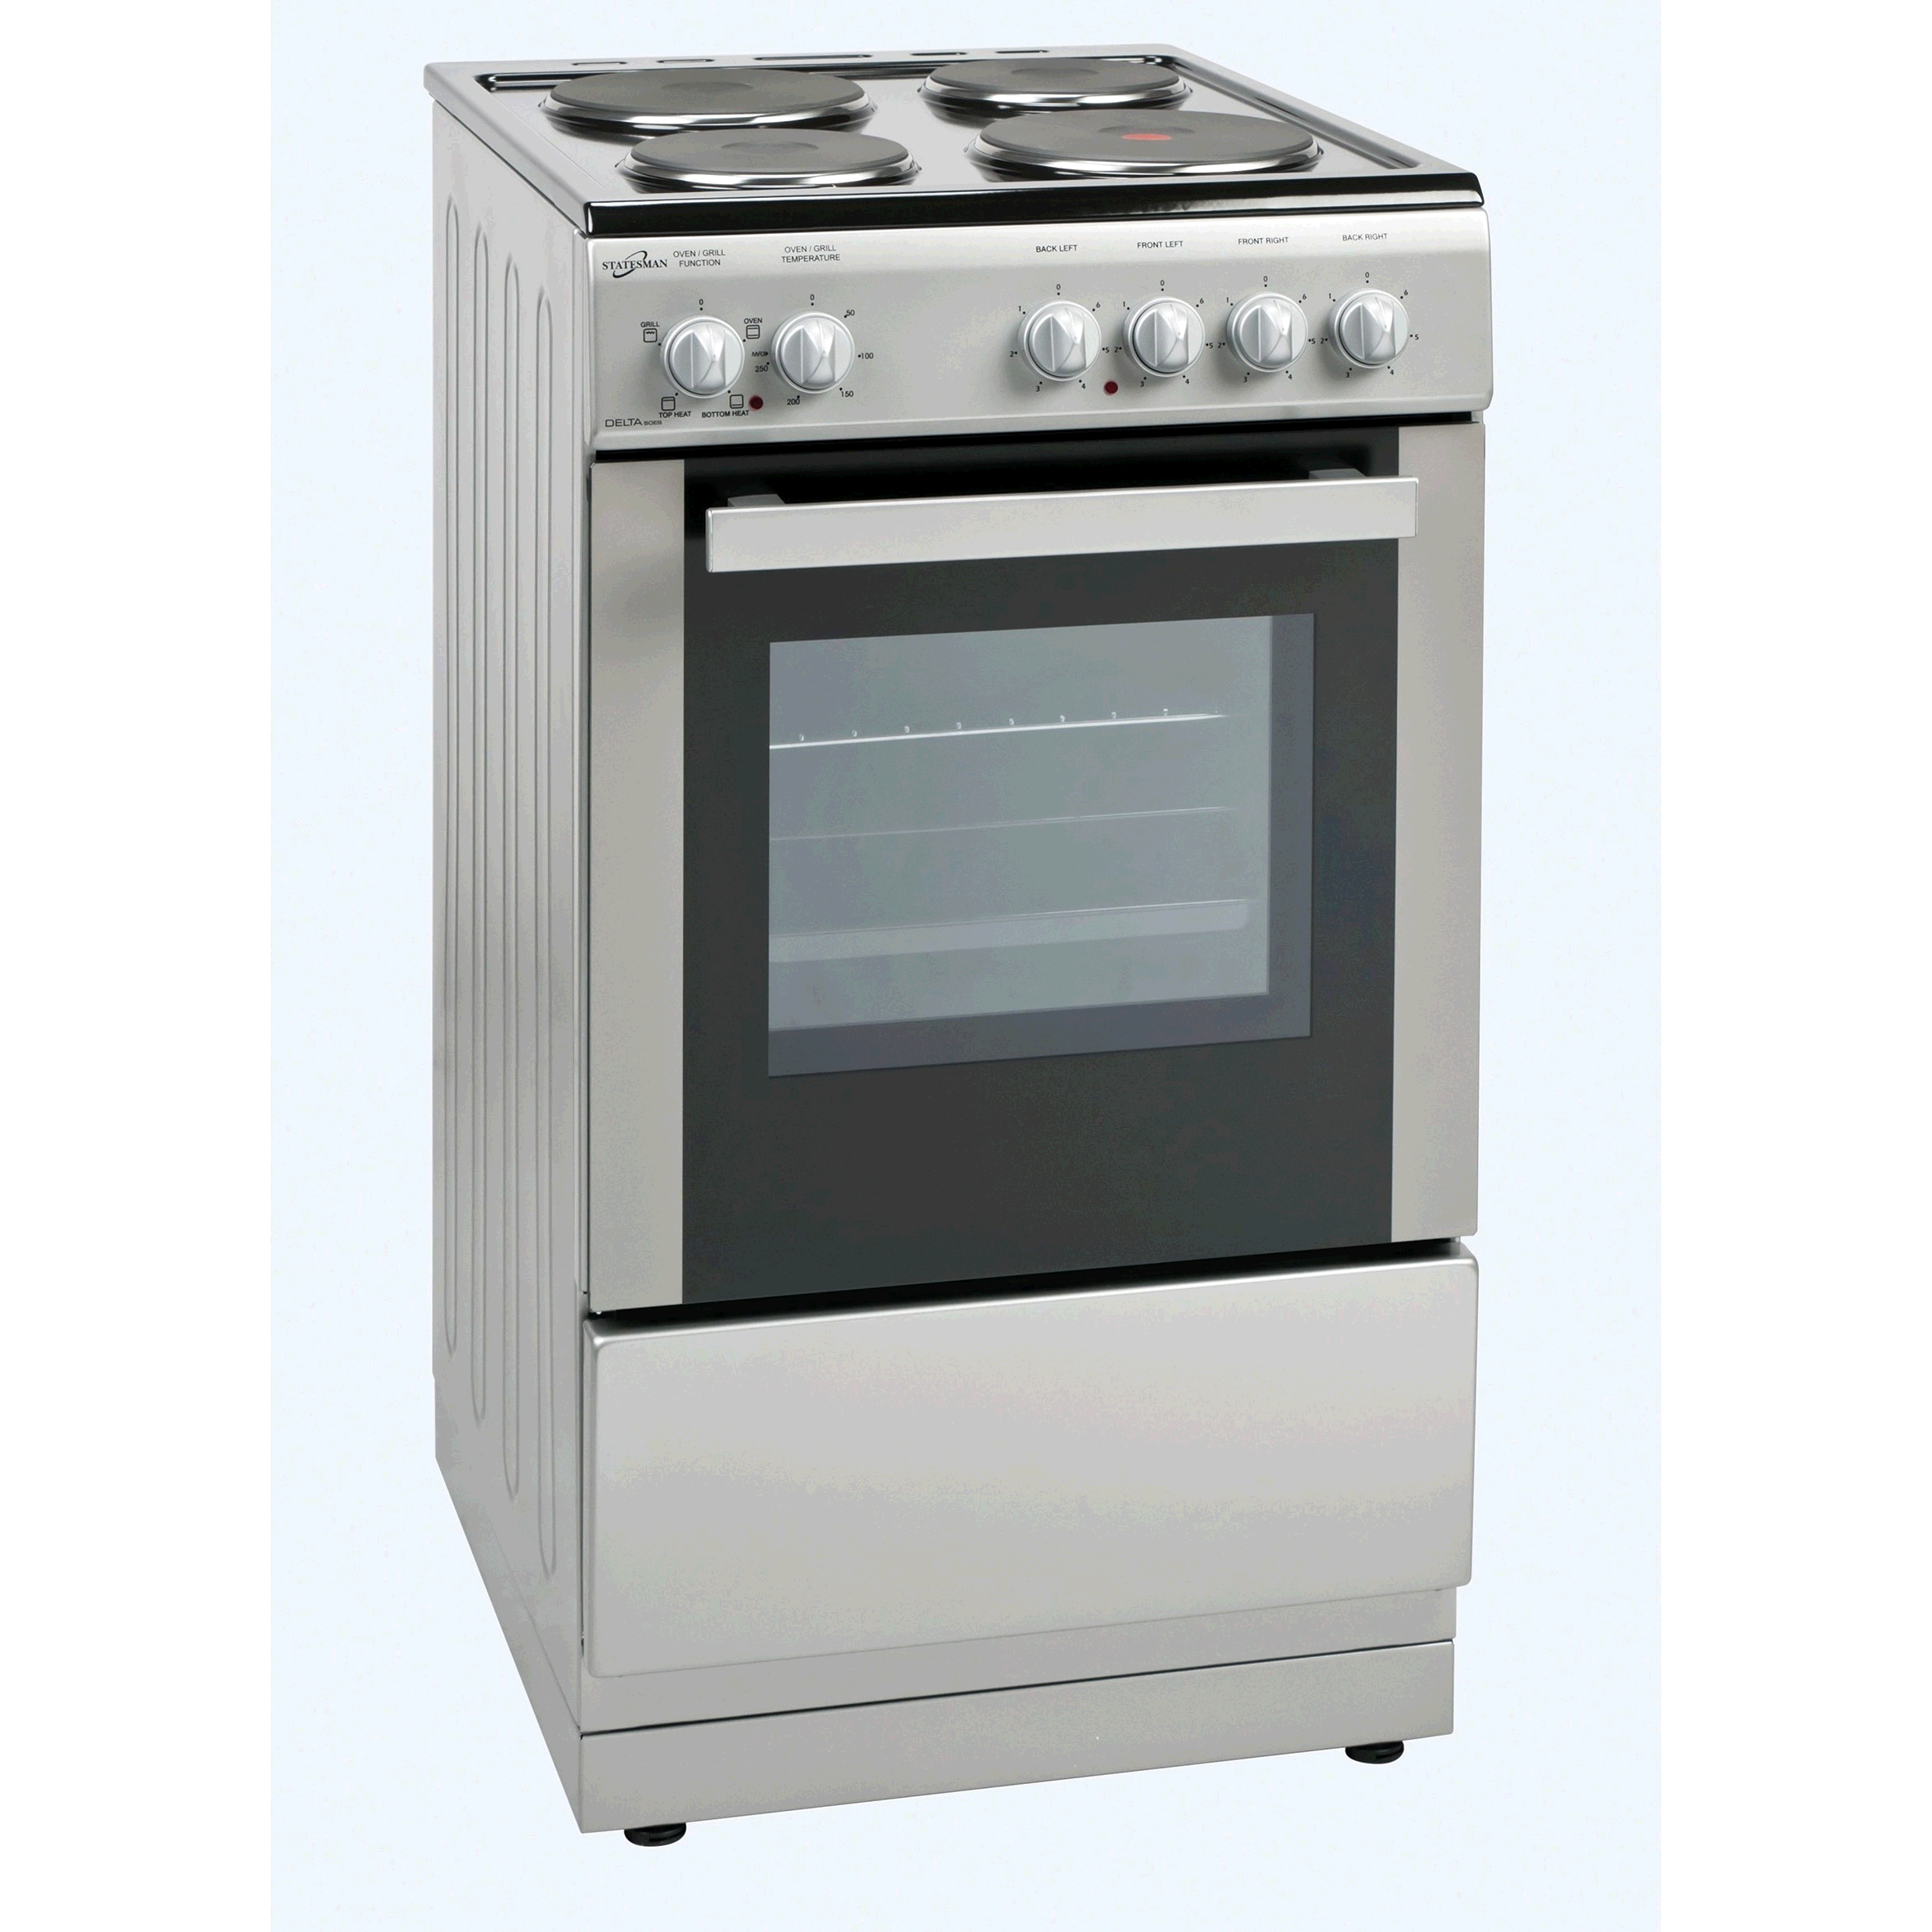 Statesman DELTA 50cm Single Cavity Cooker Solid plates - SILVER